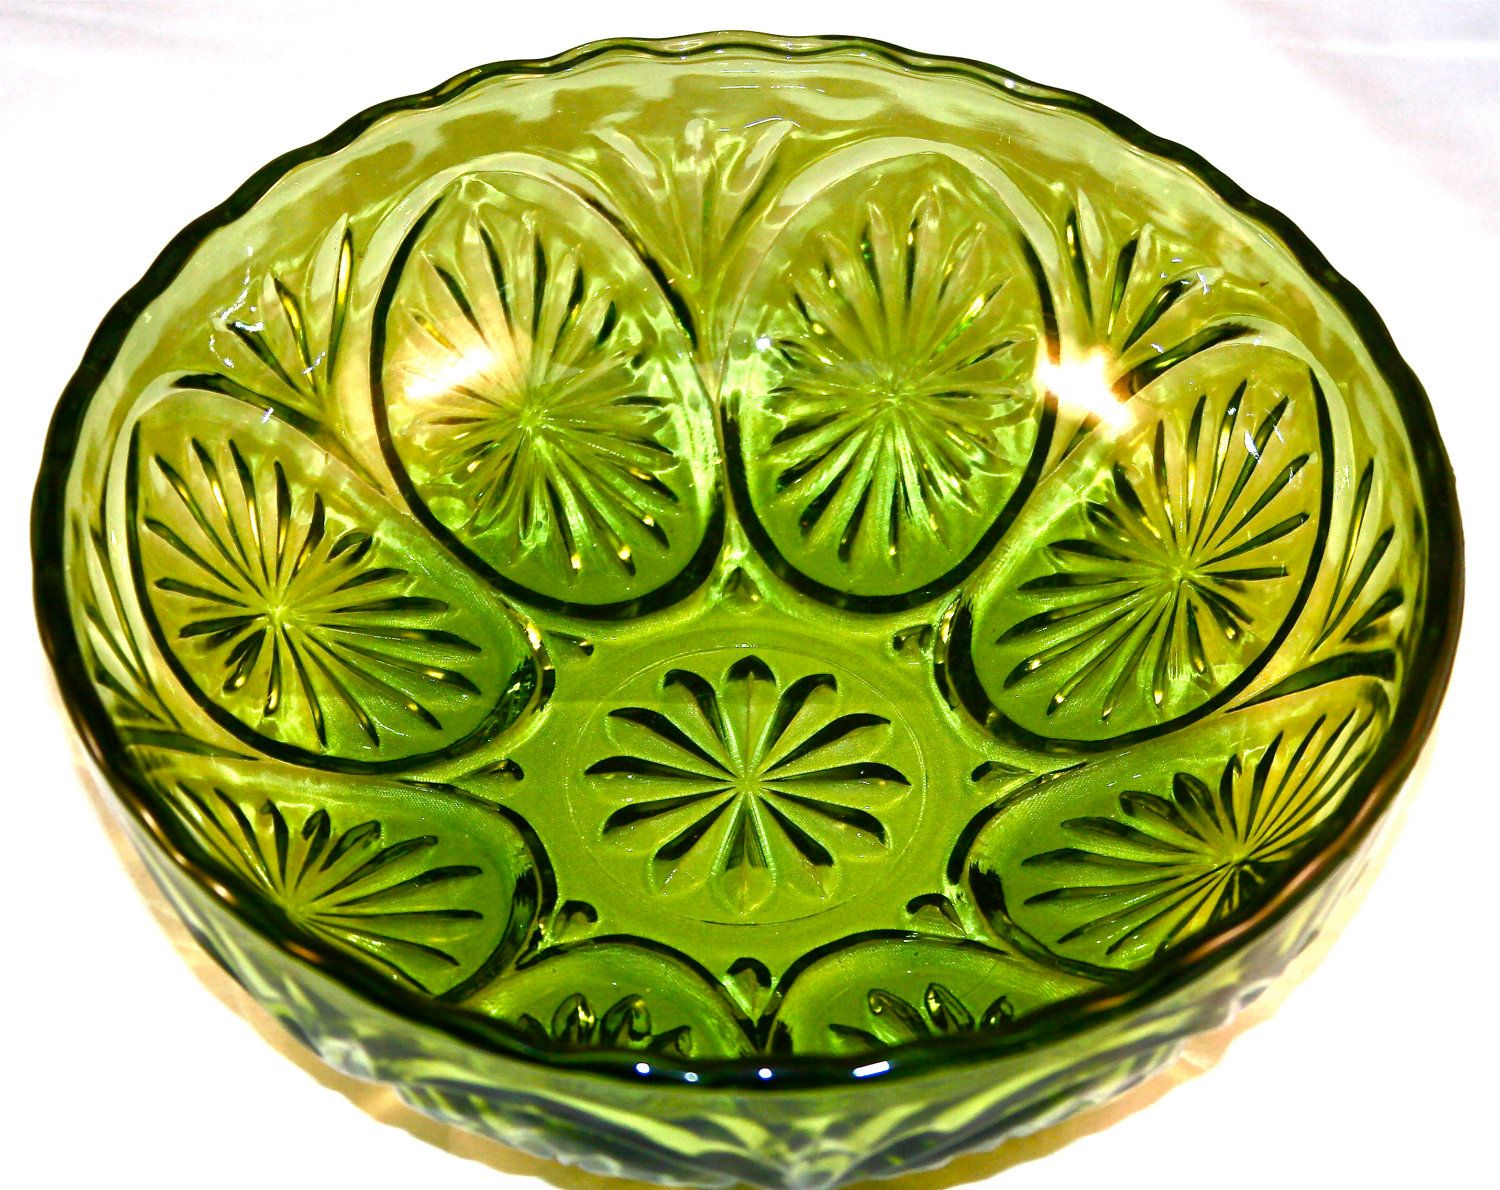 Antique Decorative Bowls Vintage Green Glass Decorative Bowli Have The Chip And Dip Set Of